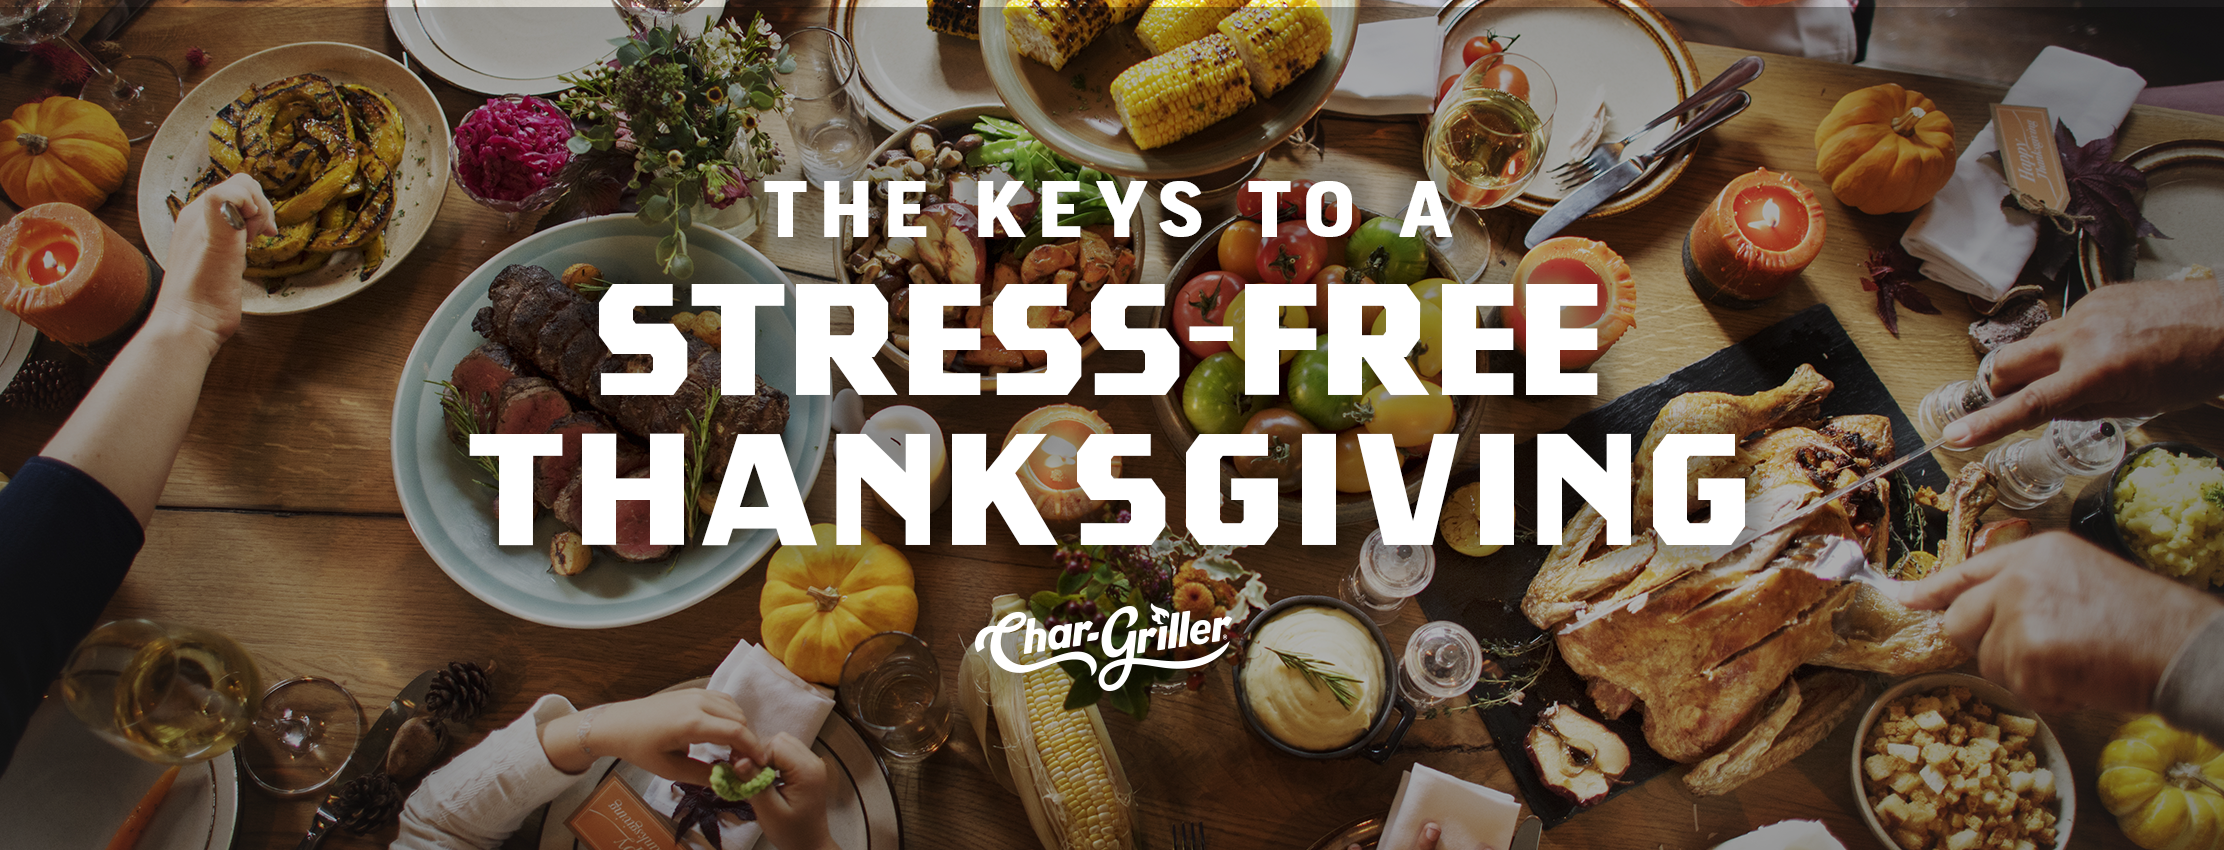 Keys to a Stress-Free Thanksgiving